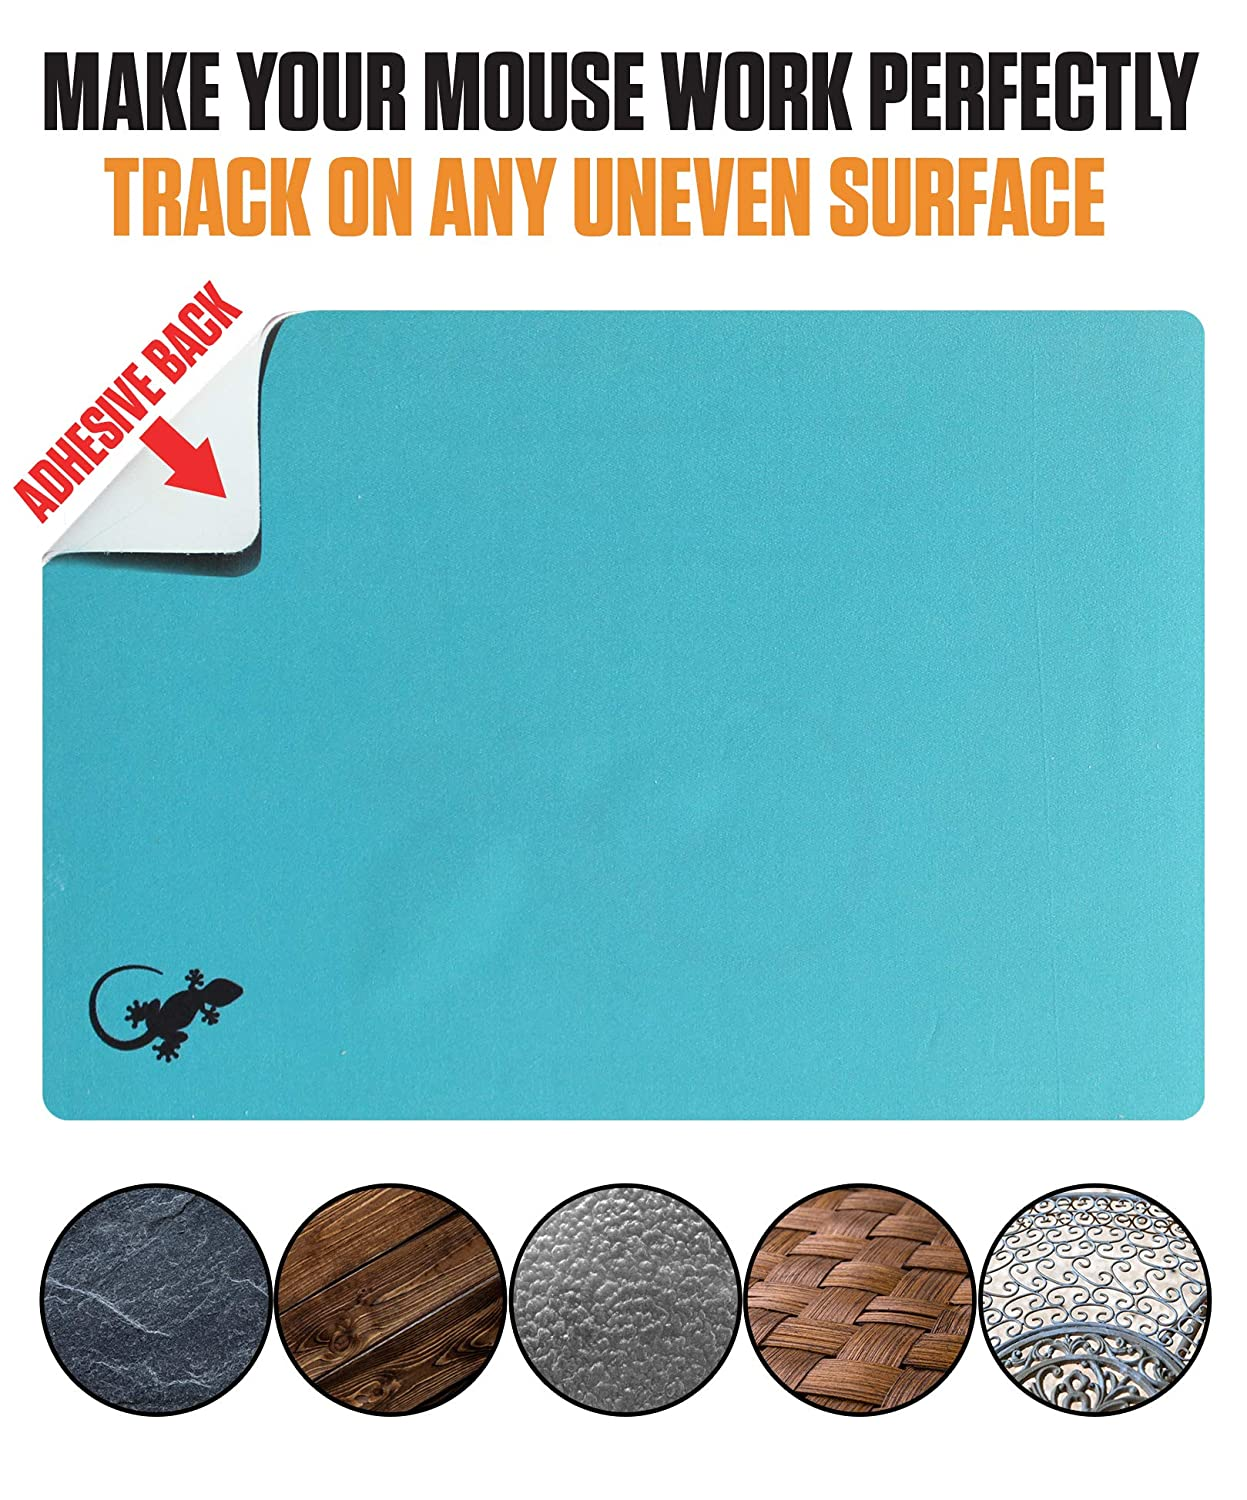 Webcam Covers and Screen Cleaner Included Portable Gray Sticks to Any Surface Mouse Pad Adhesive Bottom